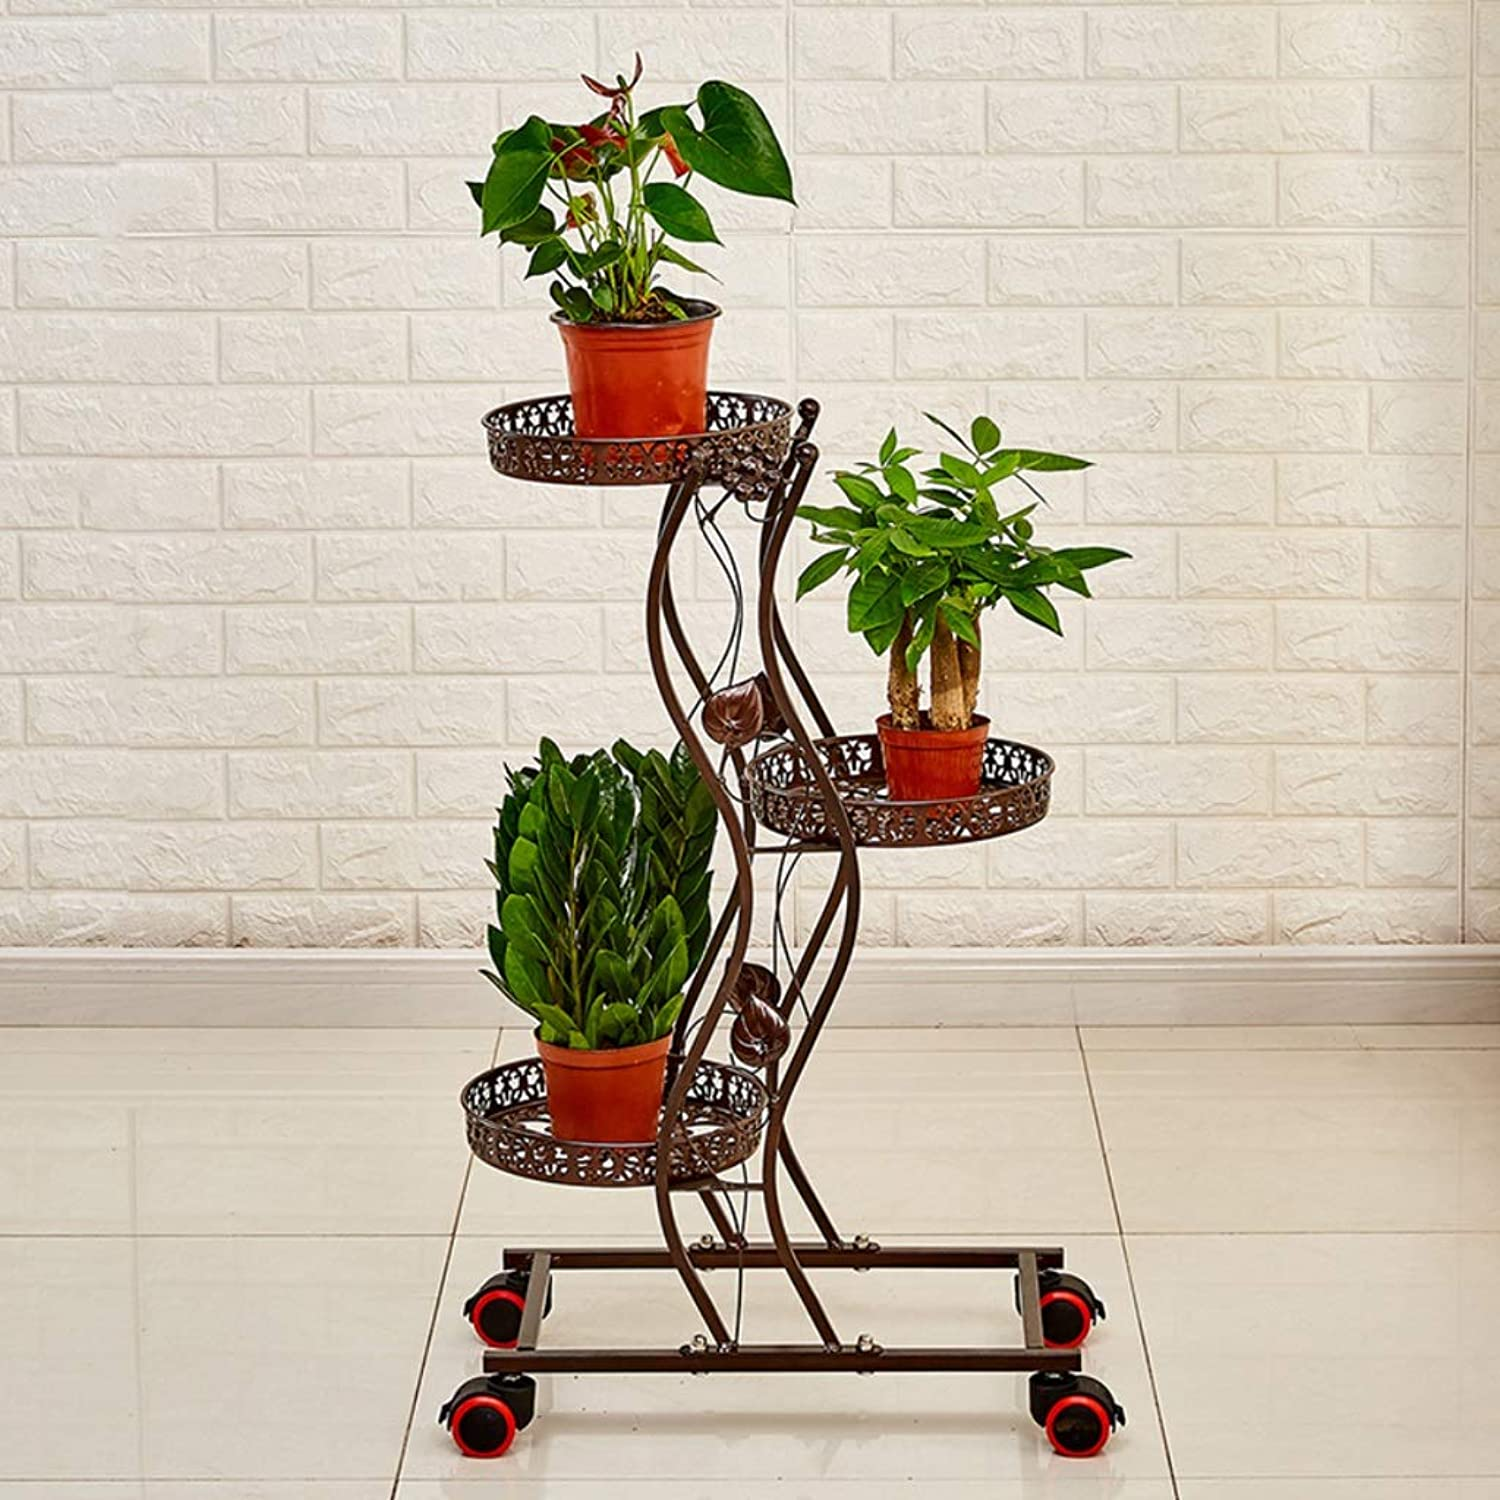 WAN SAN QIAN- Flower Shelf Metal Multi-Layer Indoor and Outdoor Movable Plant Display Stand Floor Flower Pot Rack with Wheels Flower racks (color   Brown, Size   47  27  85cm)